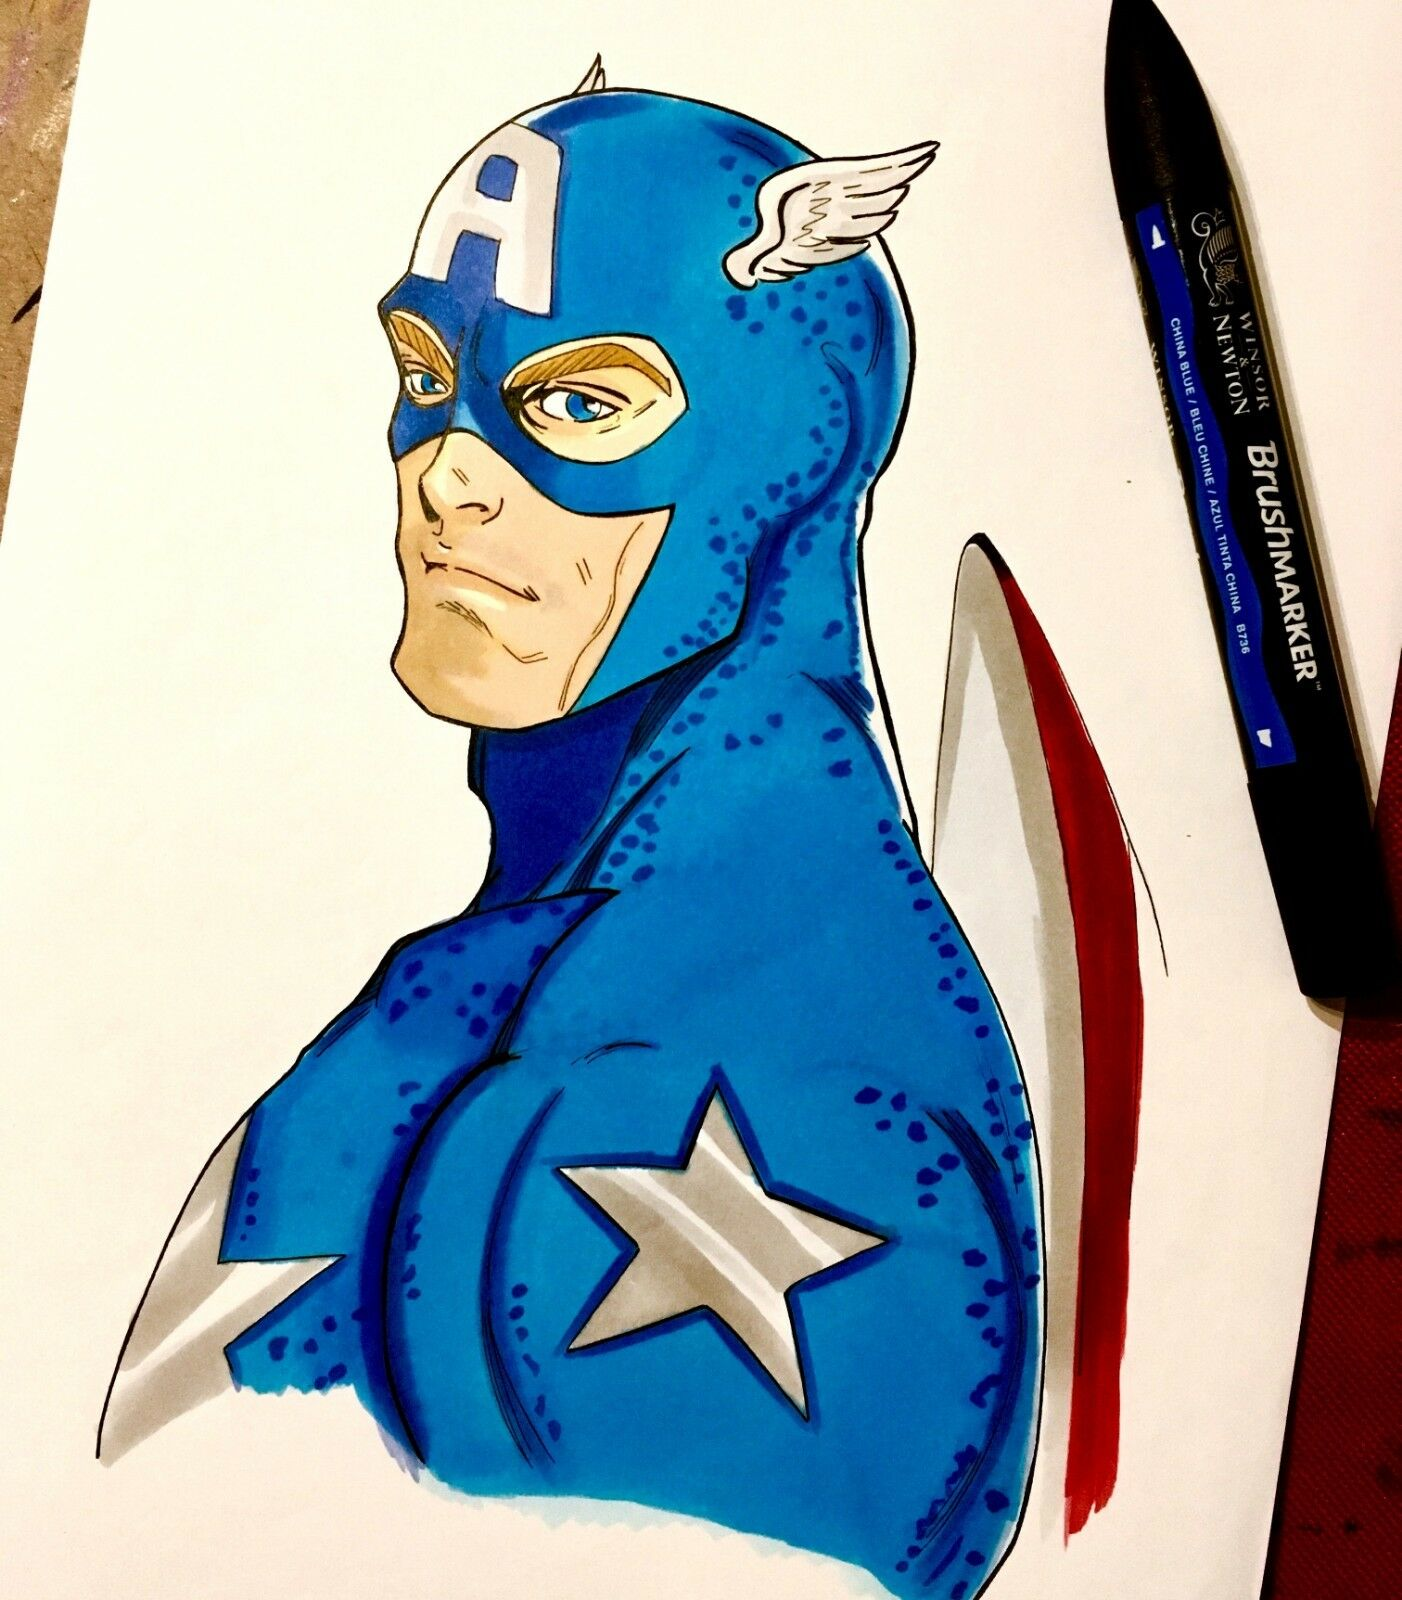 Captain America - Marvel Original Marker Artwork Artwork Artwork -   8.27 x 11.69 inches 75cdd5